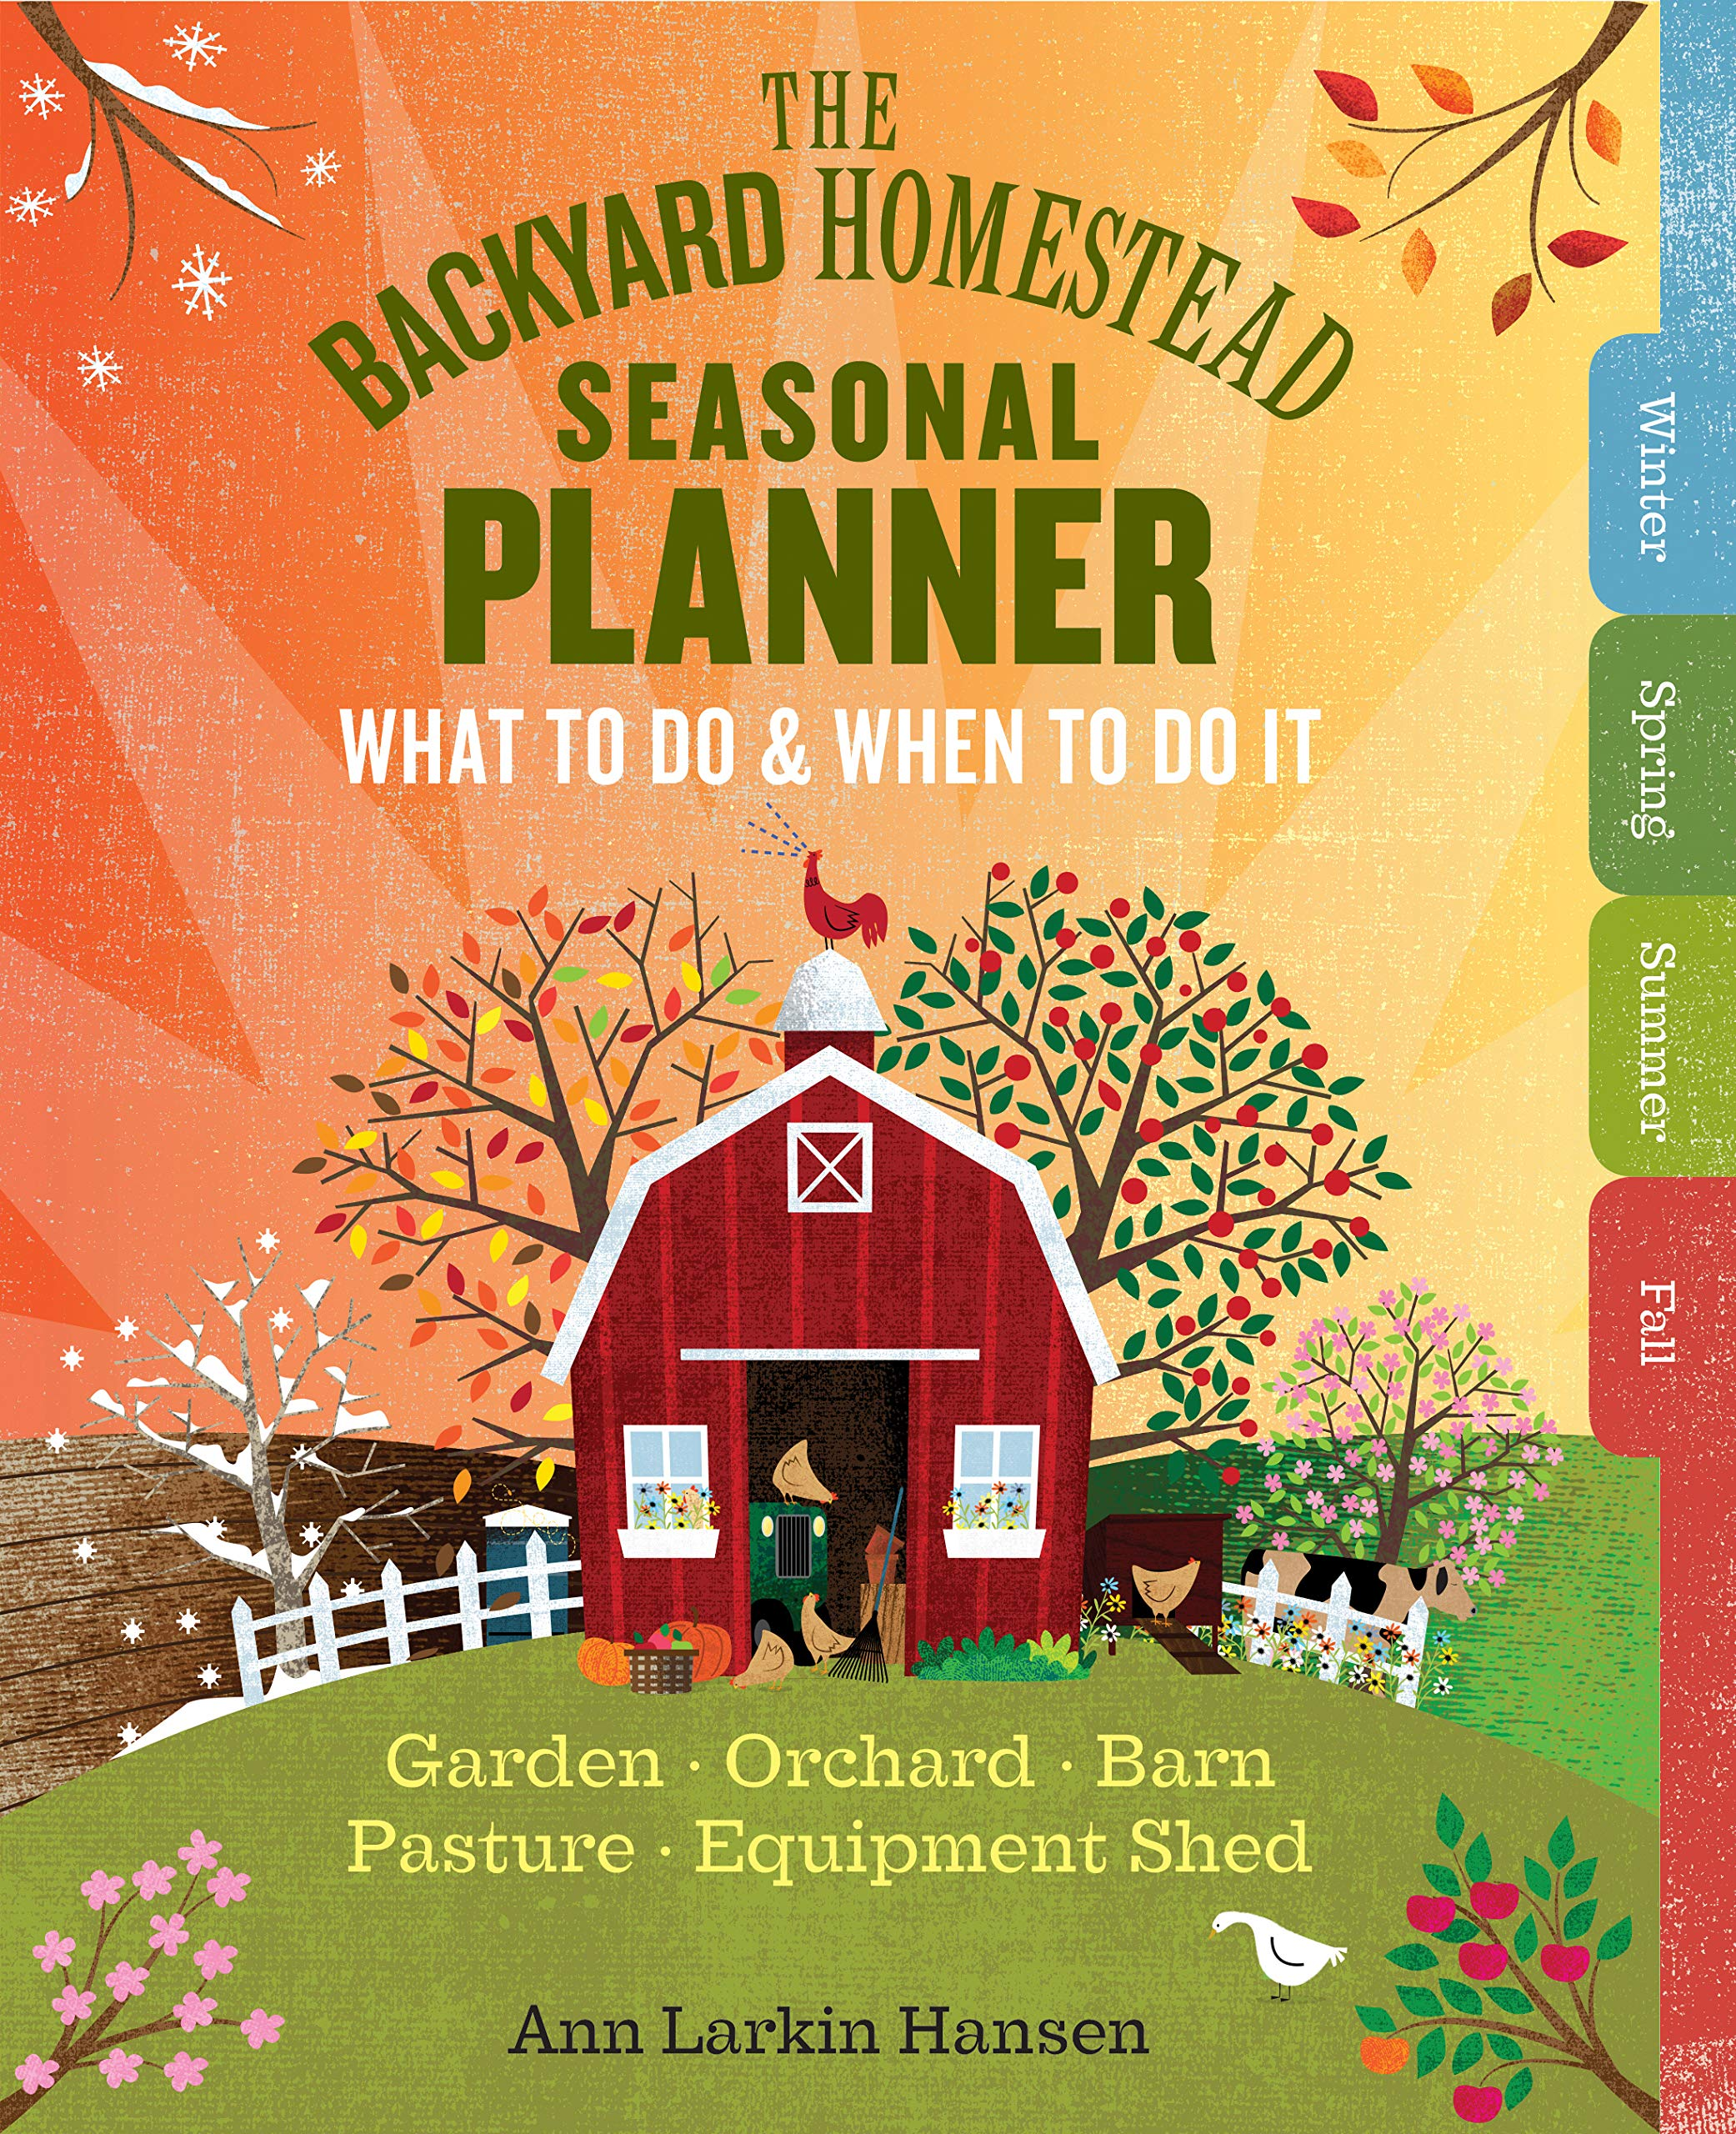 The Backyard Homestead Seasonal Planner: What to Do & When to Do It in the Garden, Orchard, Barn, Pasture & Equipment Shed by Storey Publishing, LLC